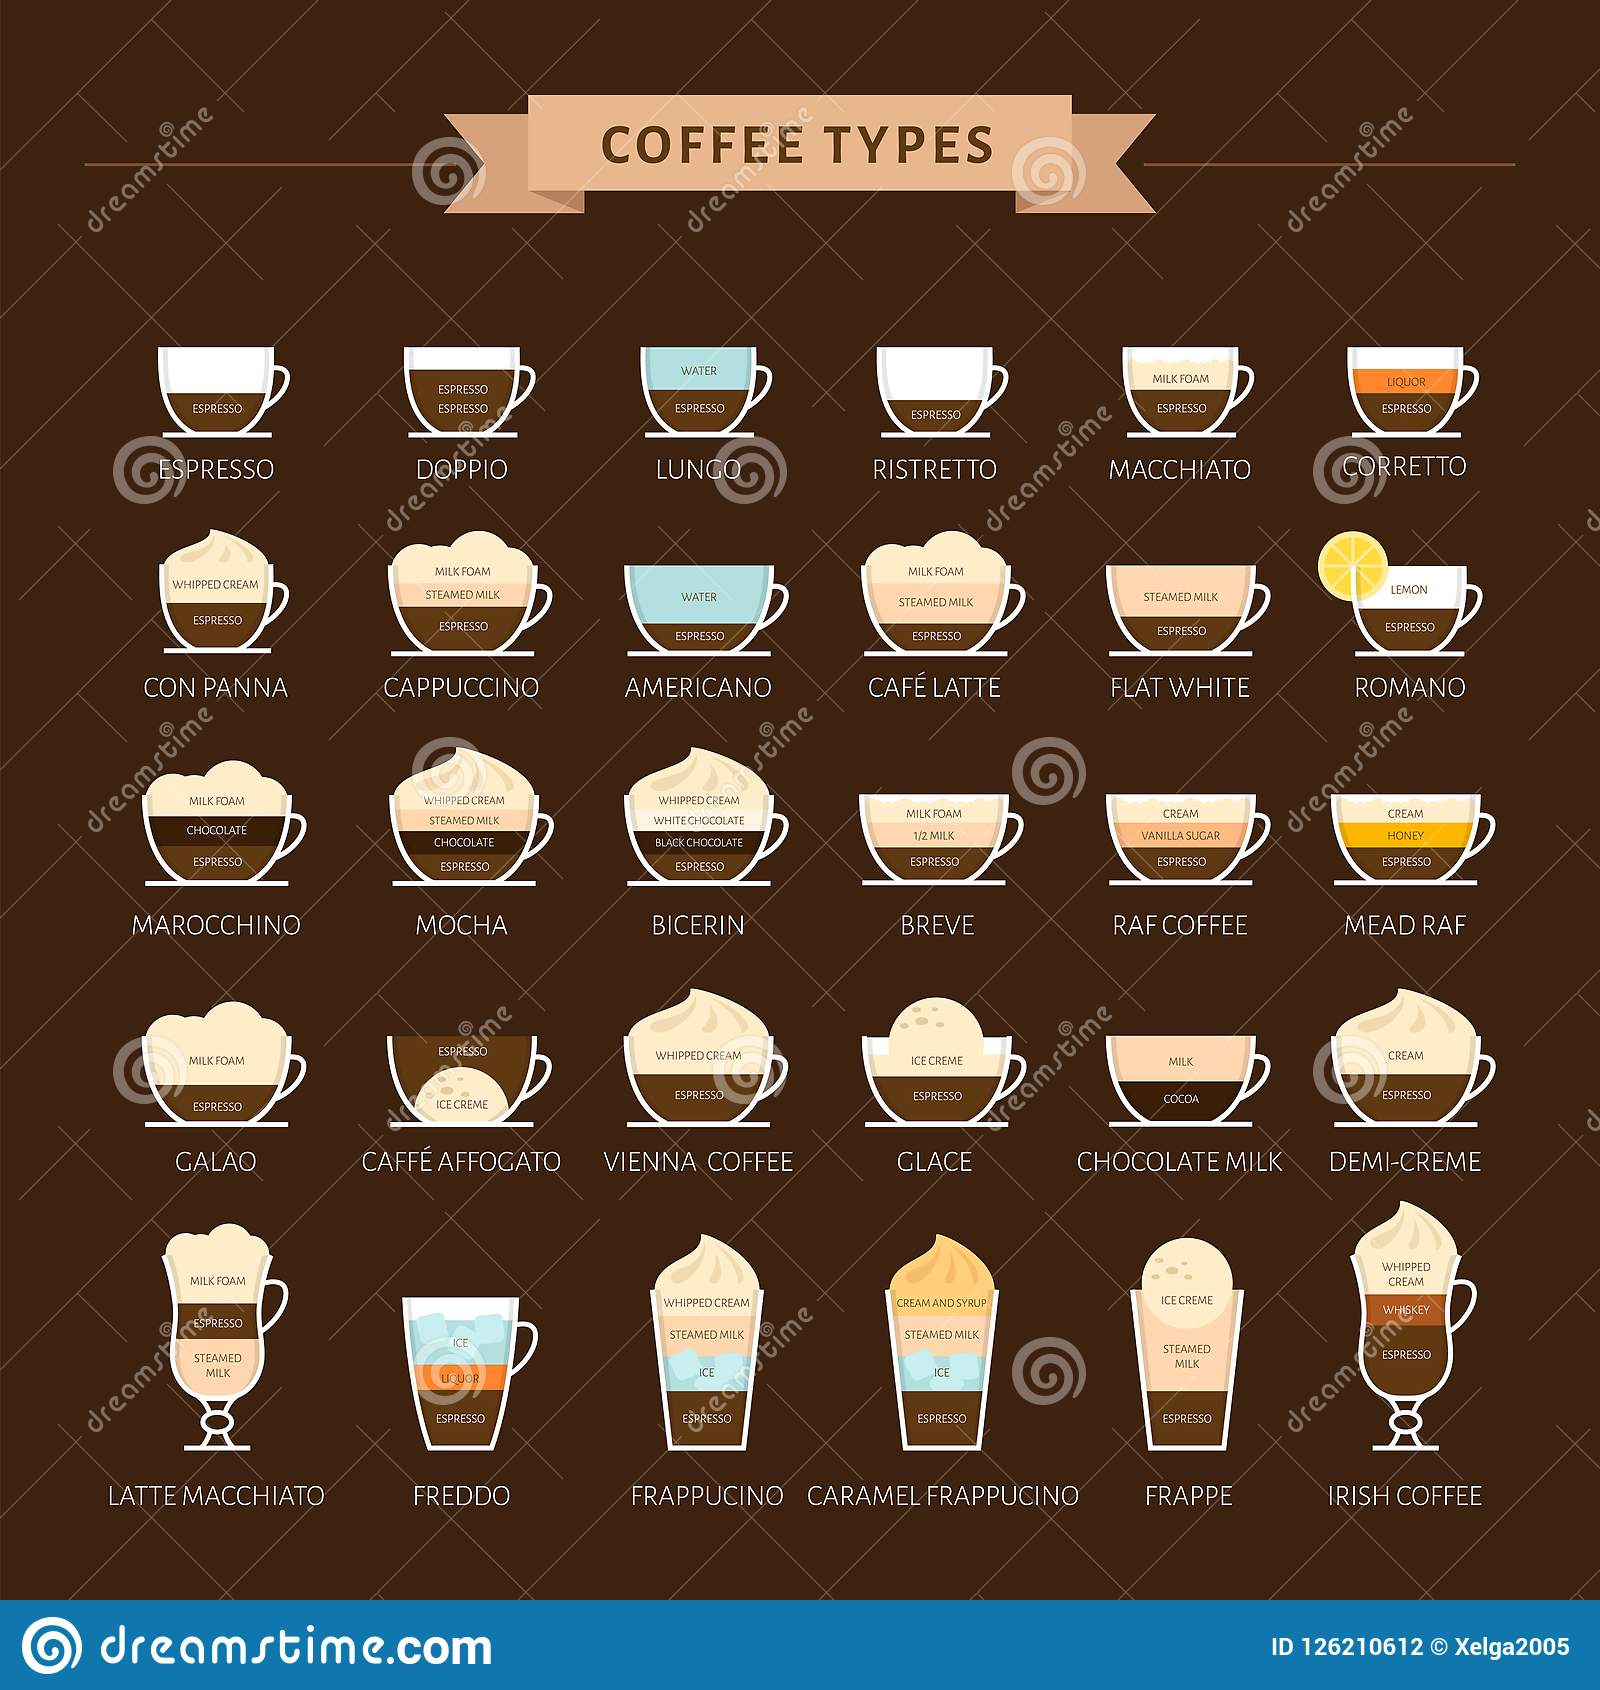 Types of coffee vector illustration. Infographic of coffee types